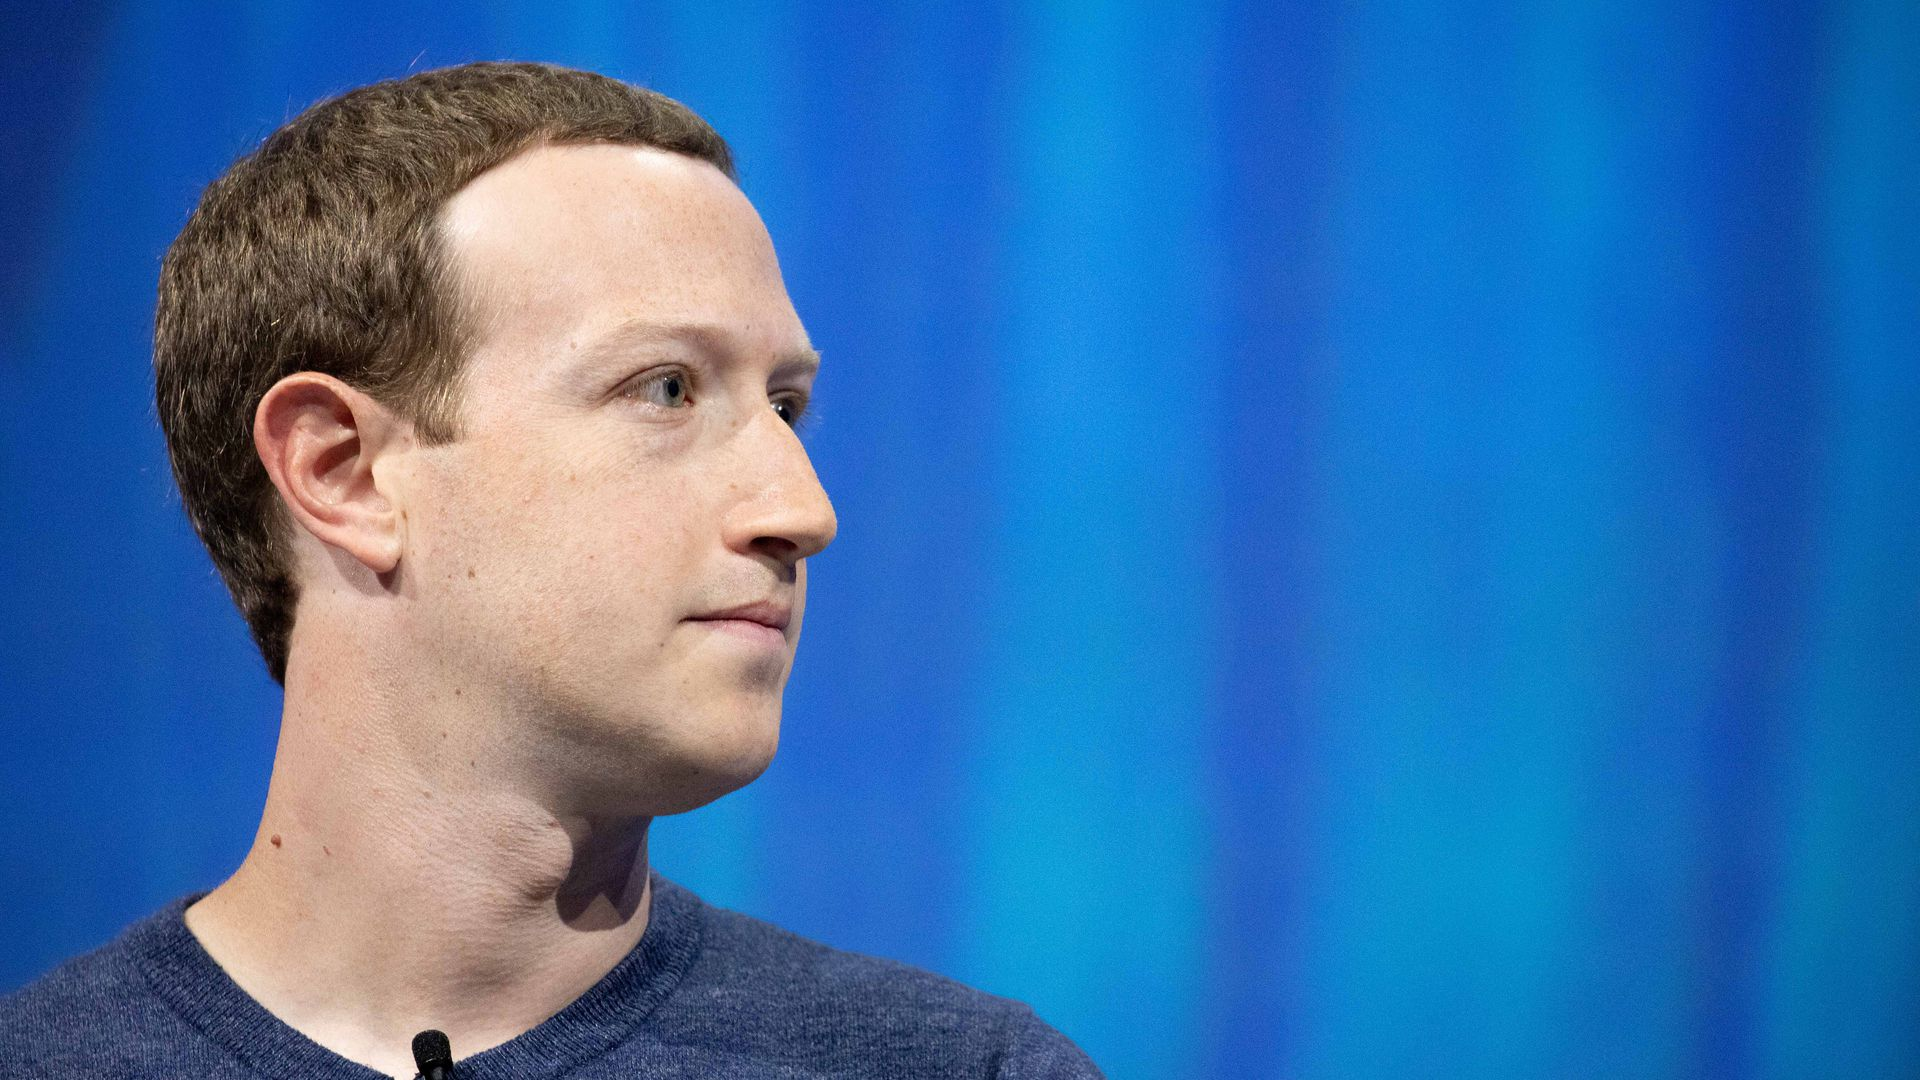 Zuckerberg outlines plan to pivot Facebook to